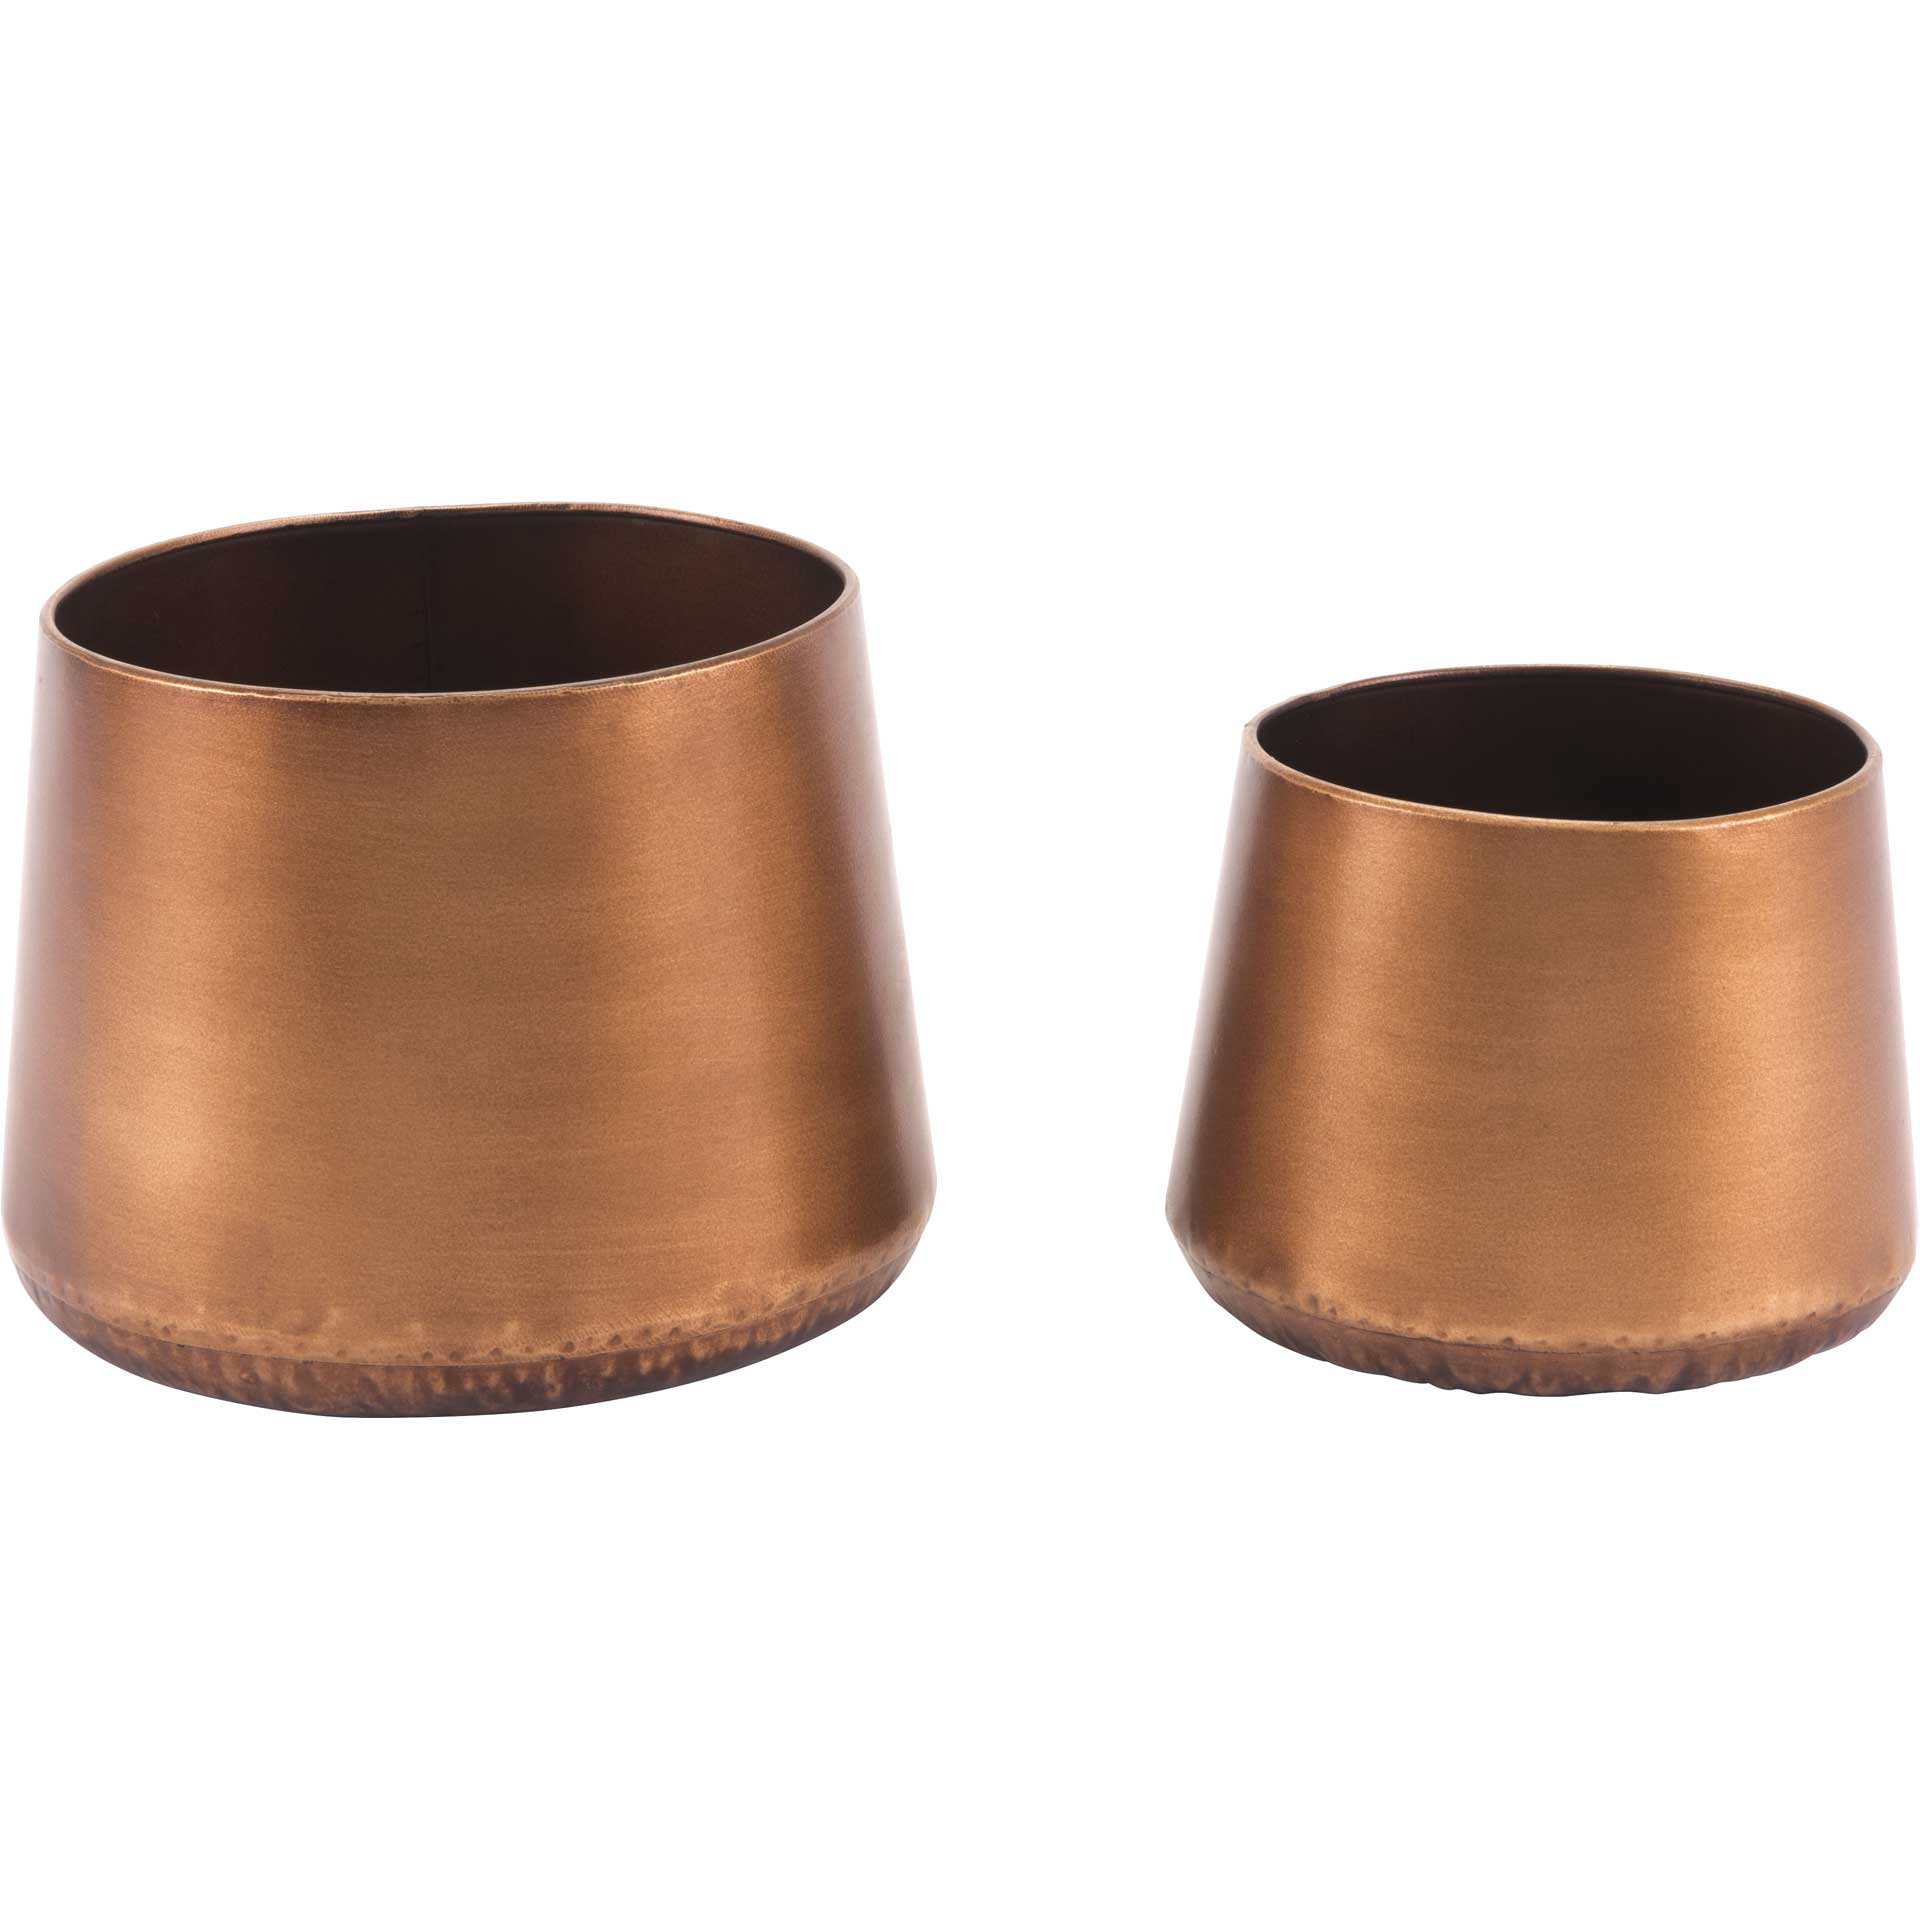 Tapered Copper Planters (Set of 2)